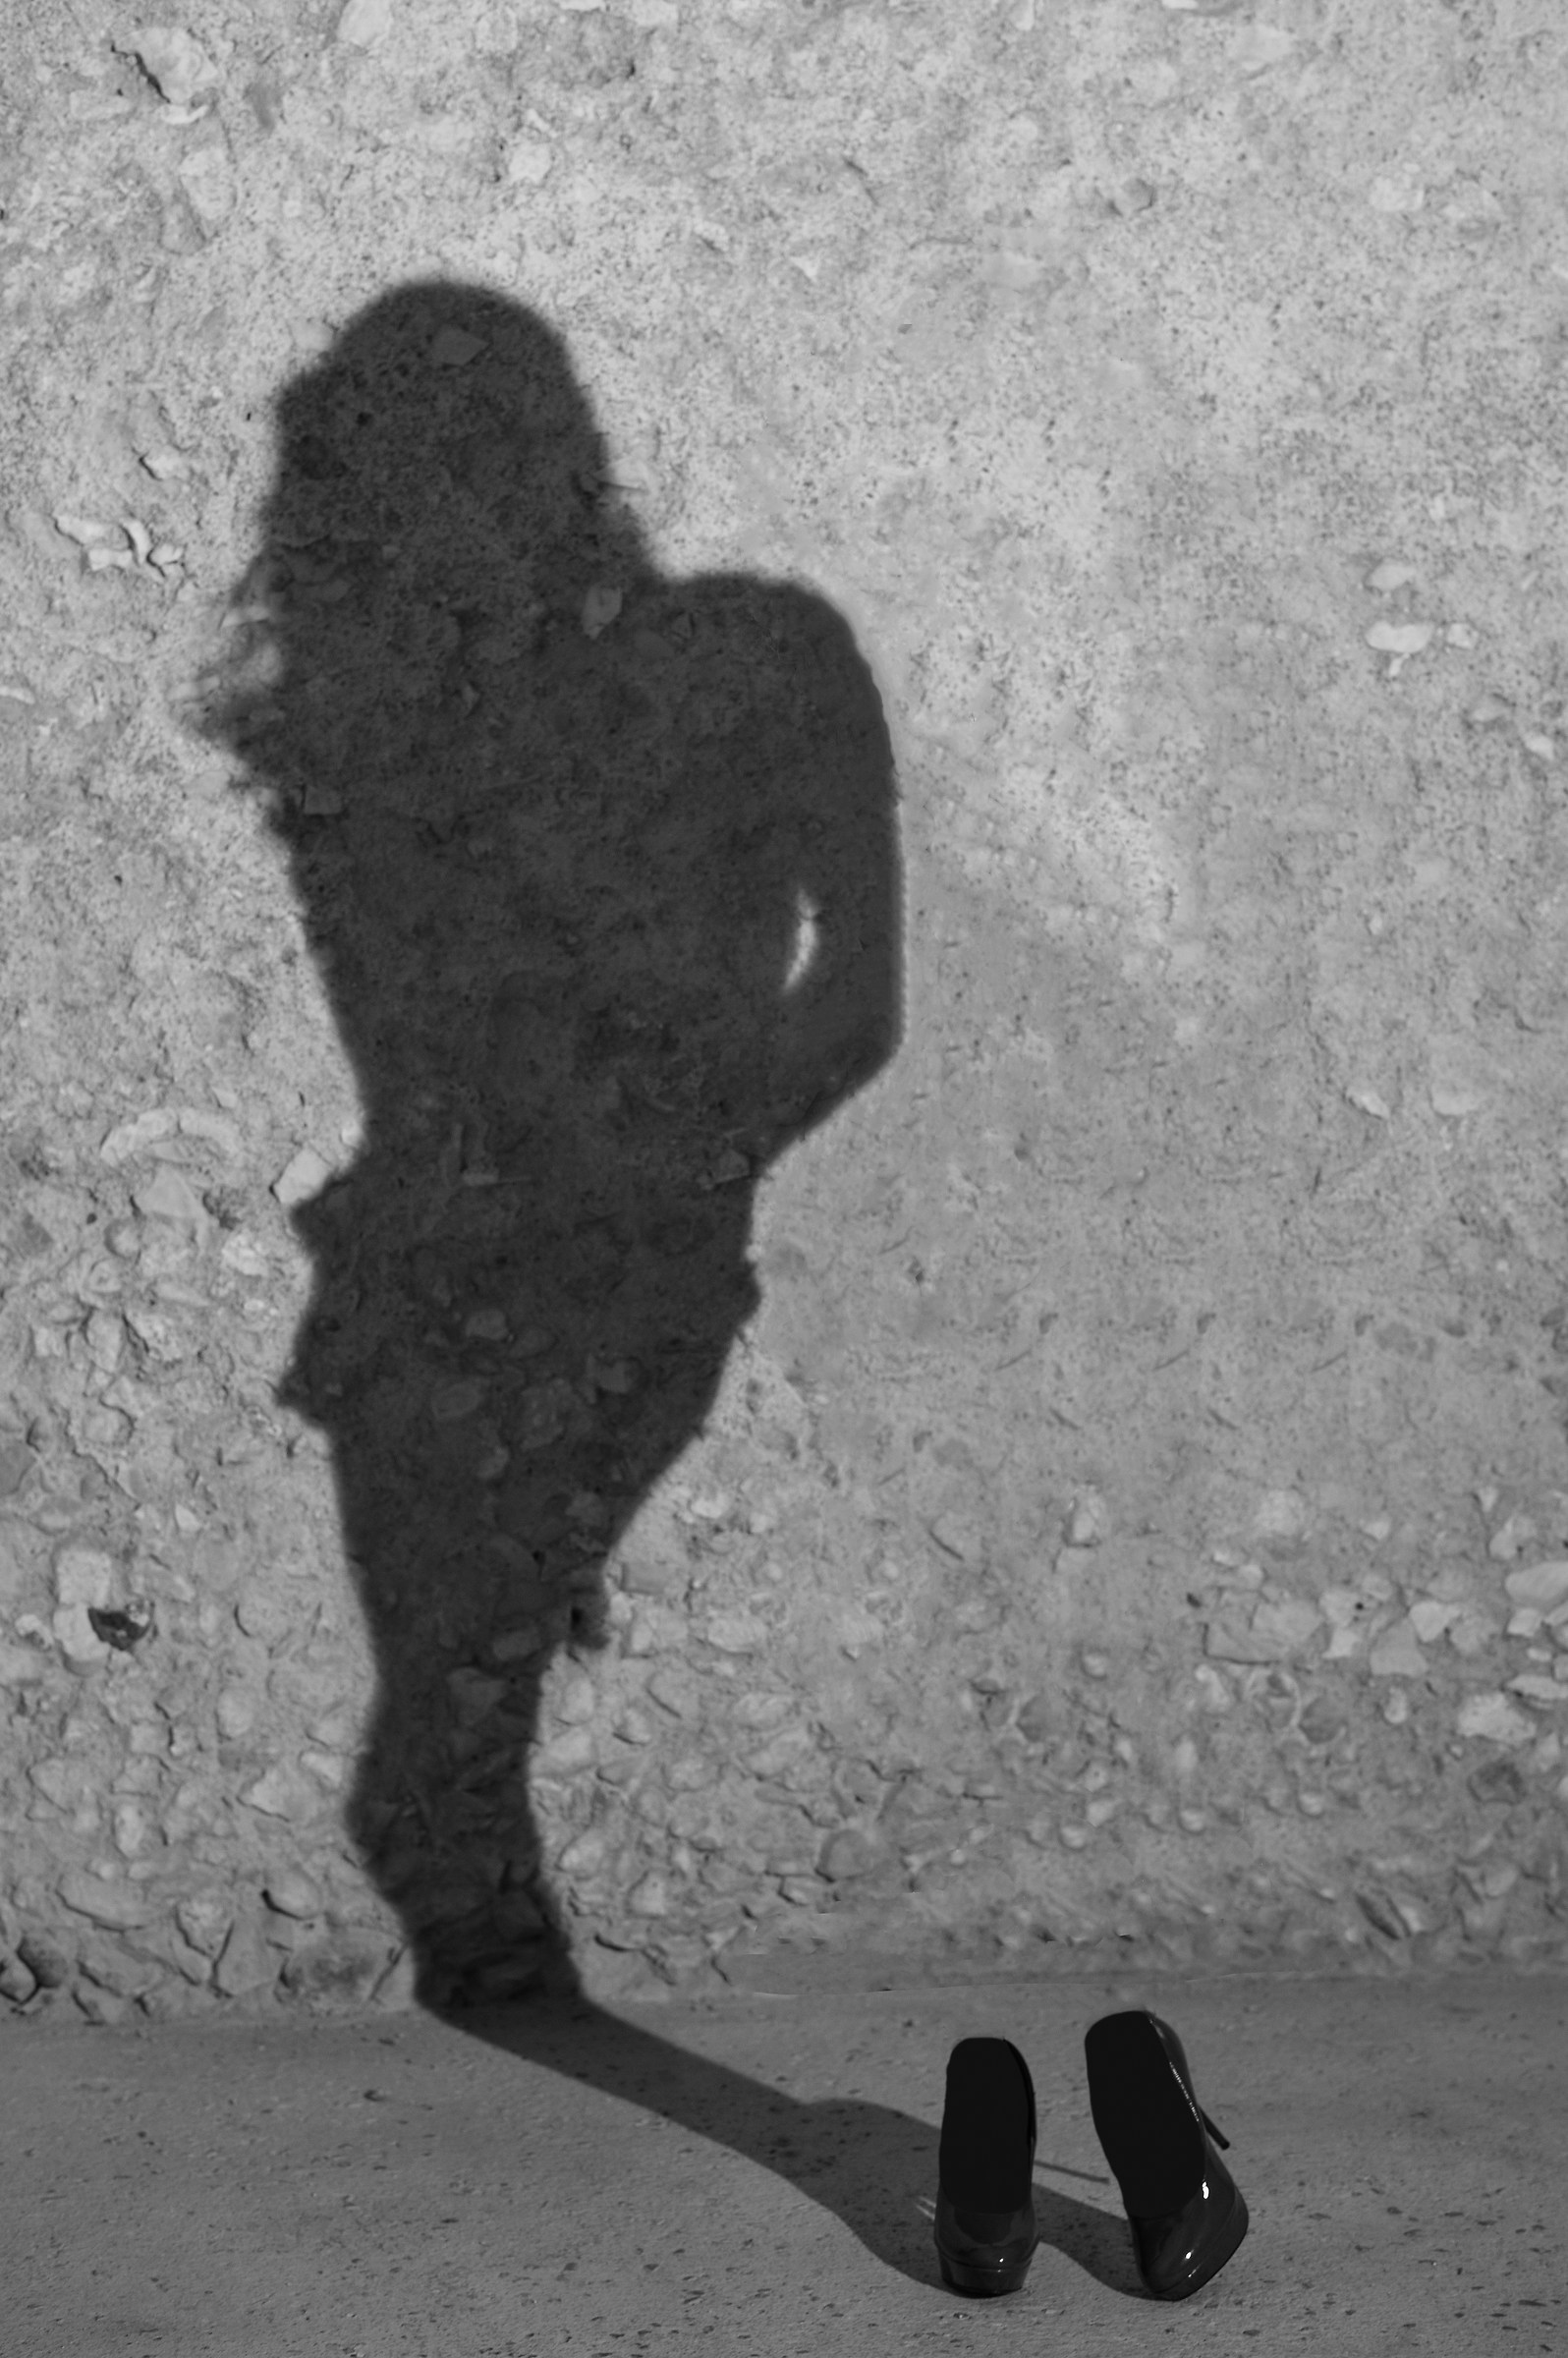 the shadow of the model ......